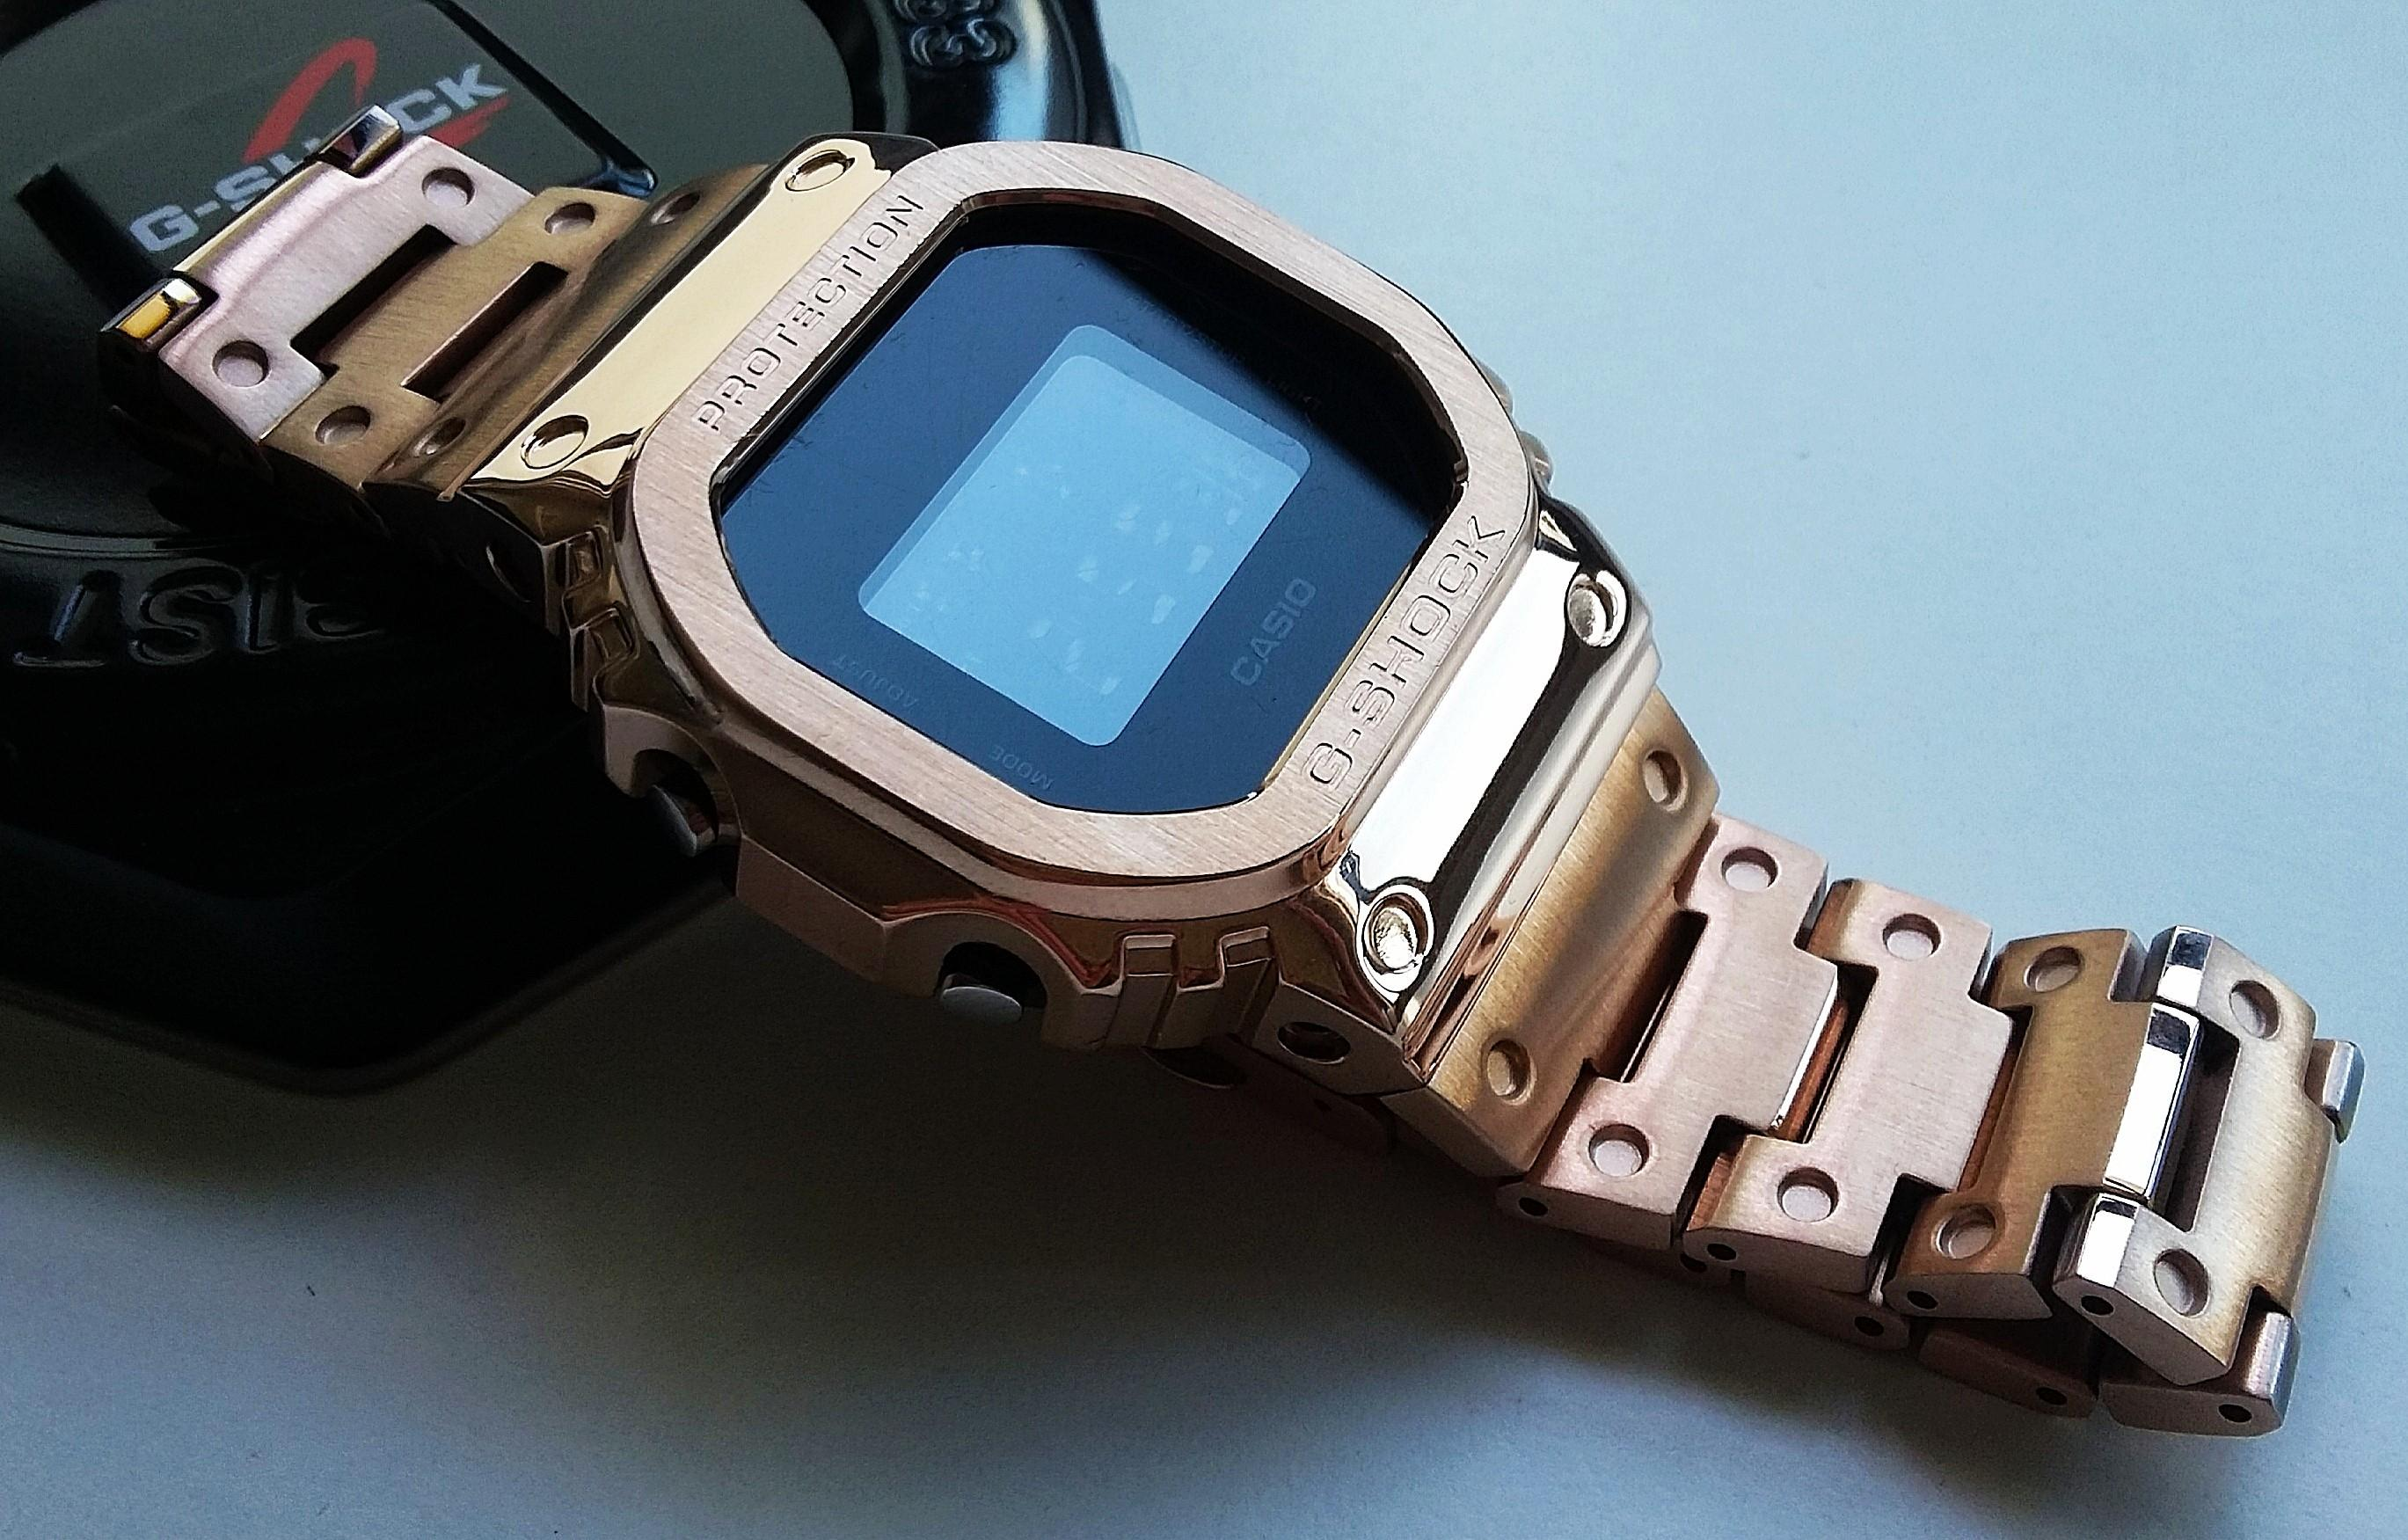 CNC MACHINED ROSEGOLD PLATED 316L STAINLESS STEEL BEZEL CASE AND BRACELET FOR CASIO G-SHOCK DW5610, G 5600E, GW-M5610, GW-M5600, GLX-5600, GLS-5600, GW-M5630, GW-S5600, DW-D5600(PRICE INCLUDE M0DIFICATION)